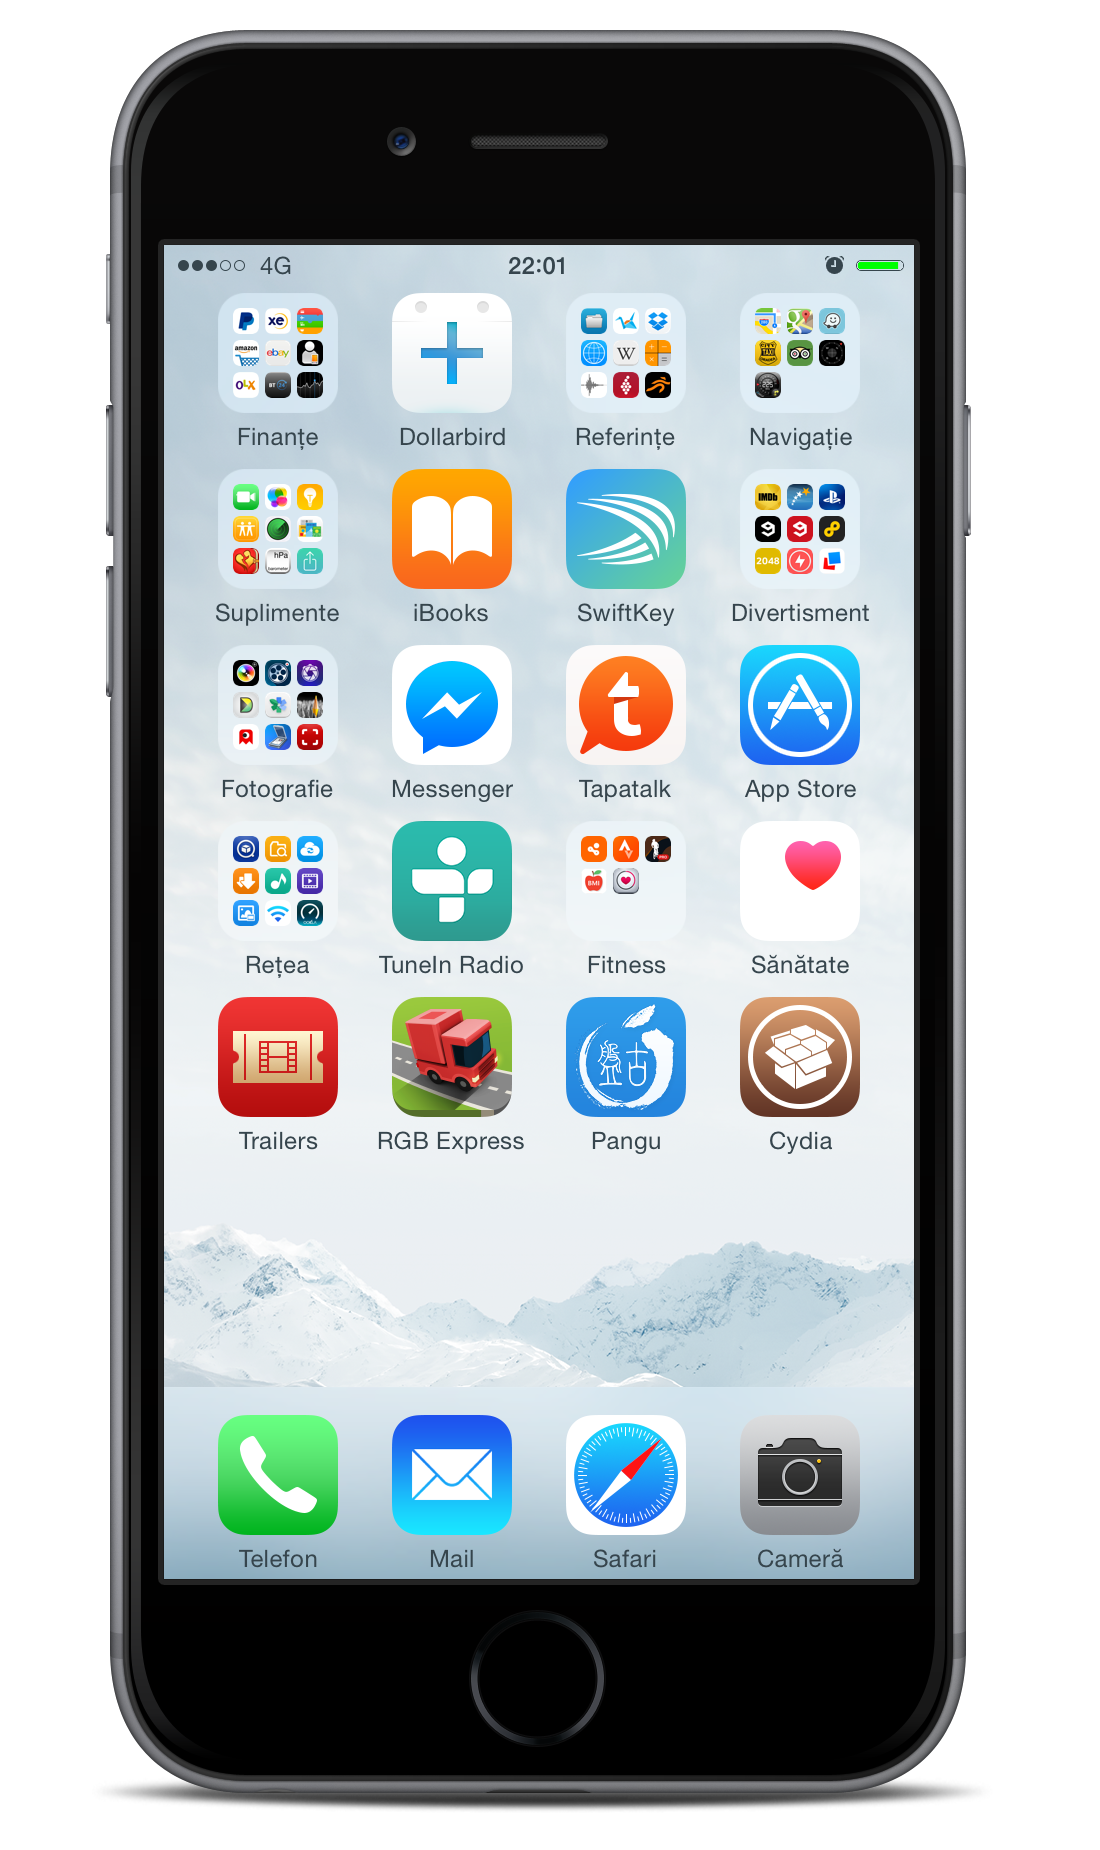 General - Post your Jailbroken Home Screen (Part 7, iOS 8 JB)  Some